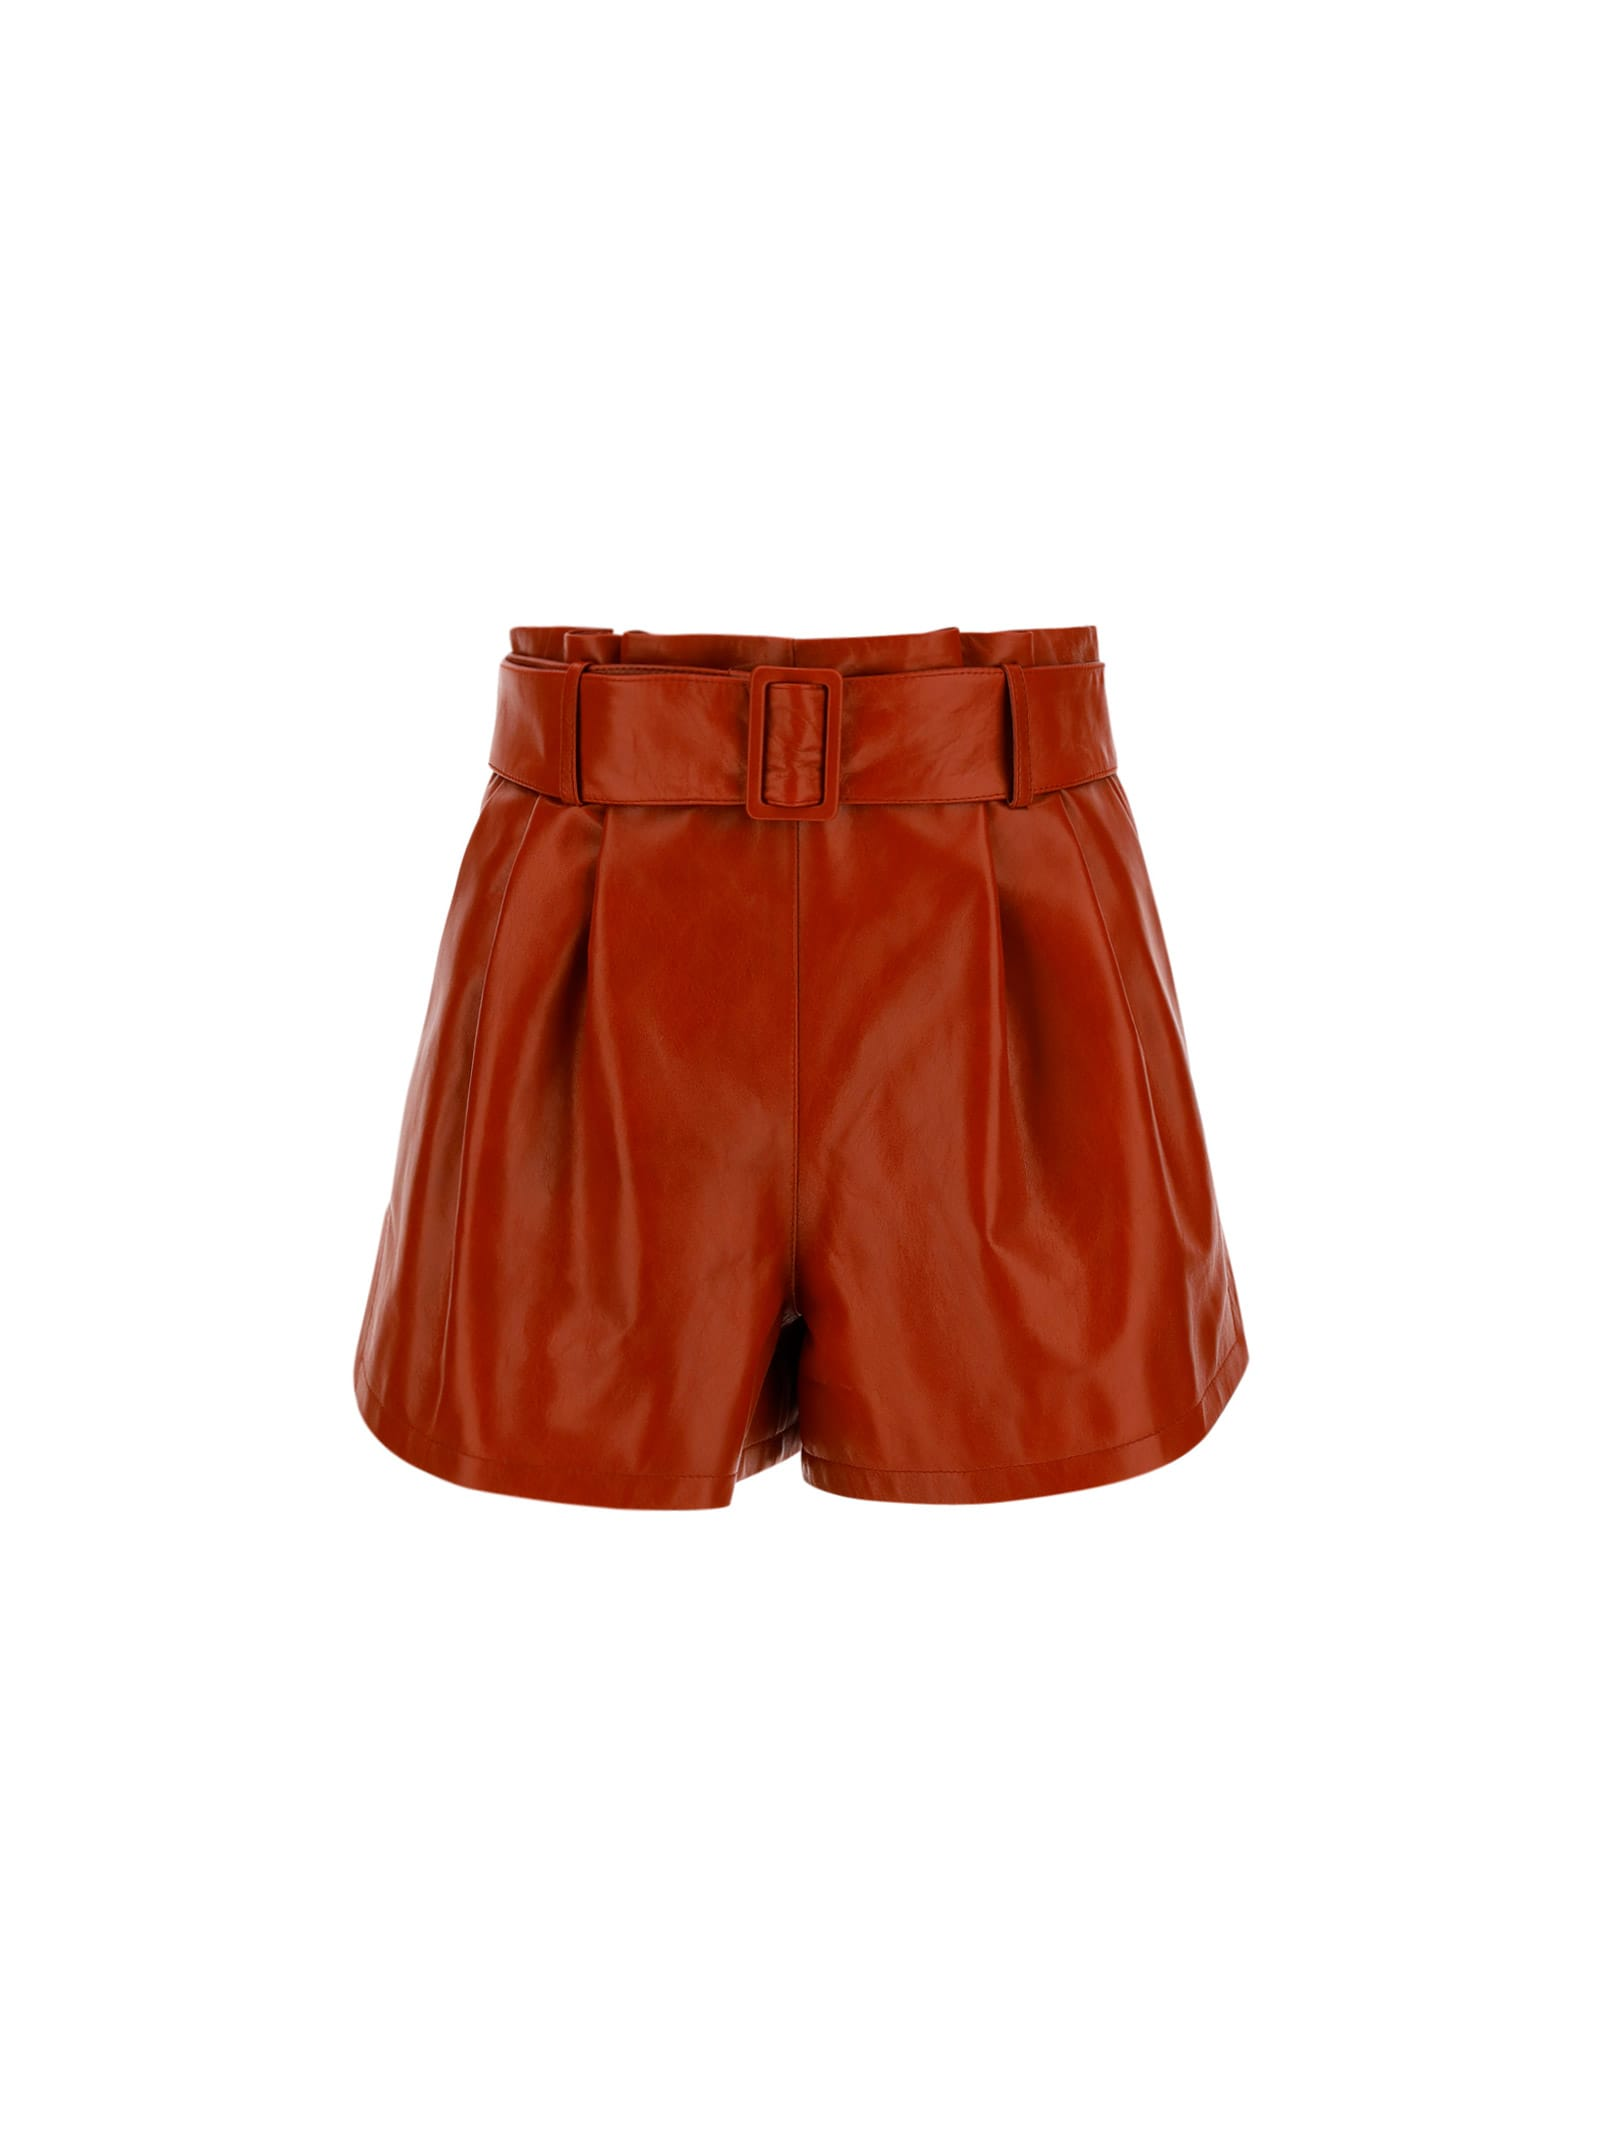 Drome LEATHER SHORTS